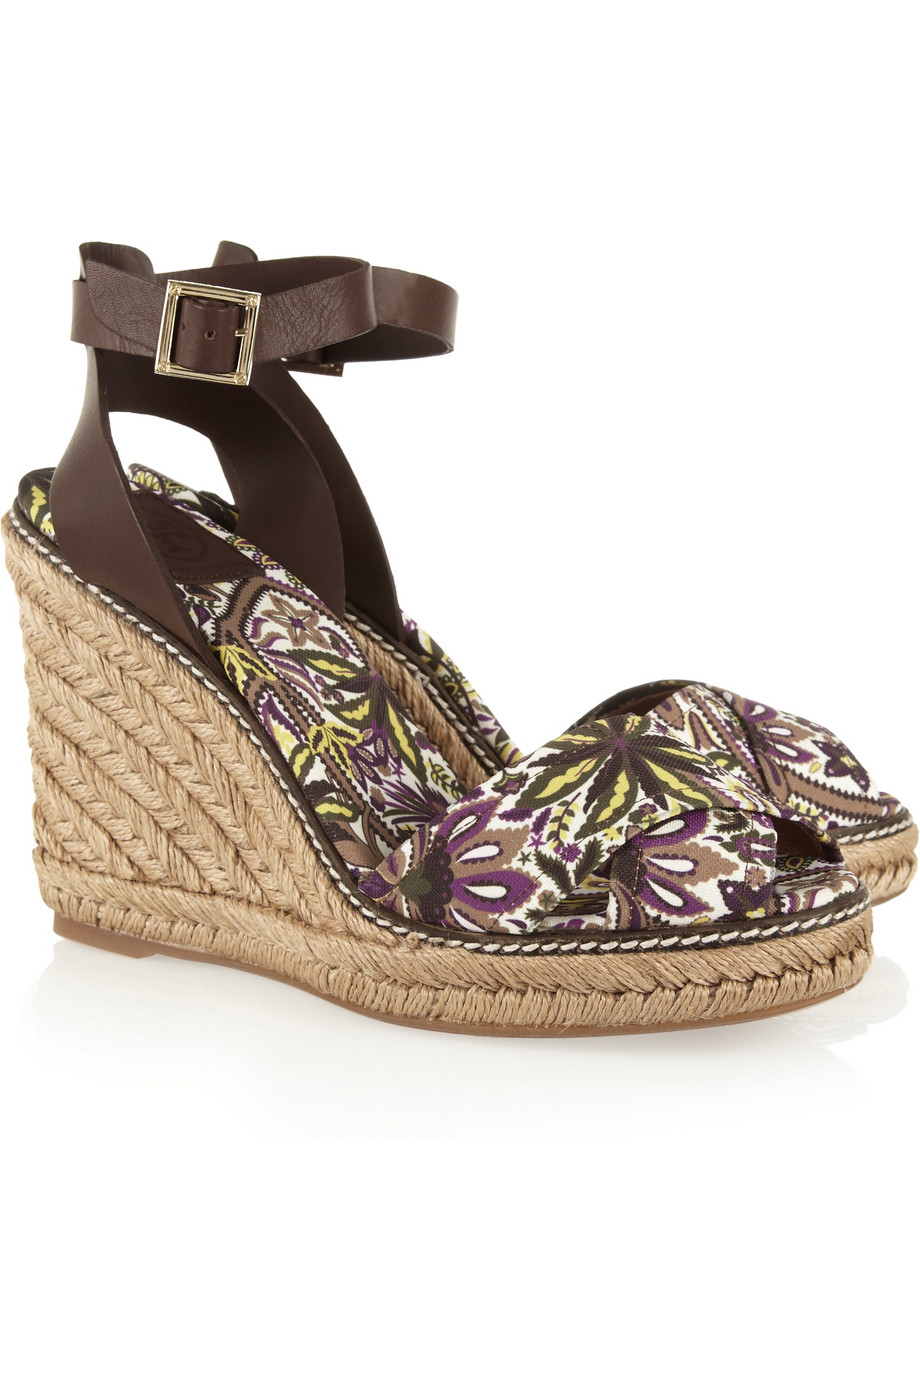 7e8a37da134 Lyst - Tory Burch Printed Canvas and Leather Espadrille Wedge ...